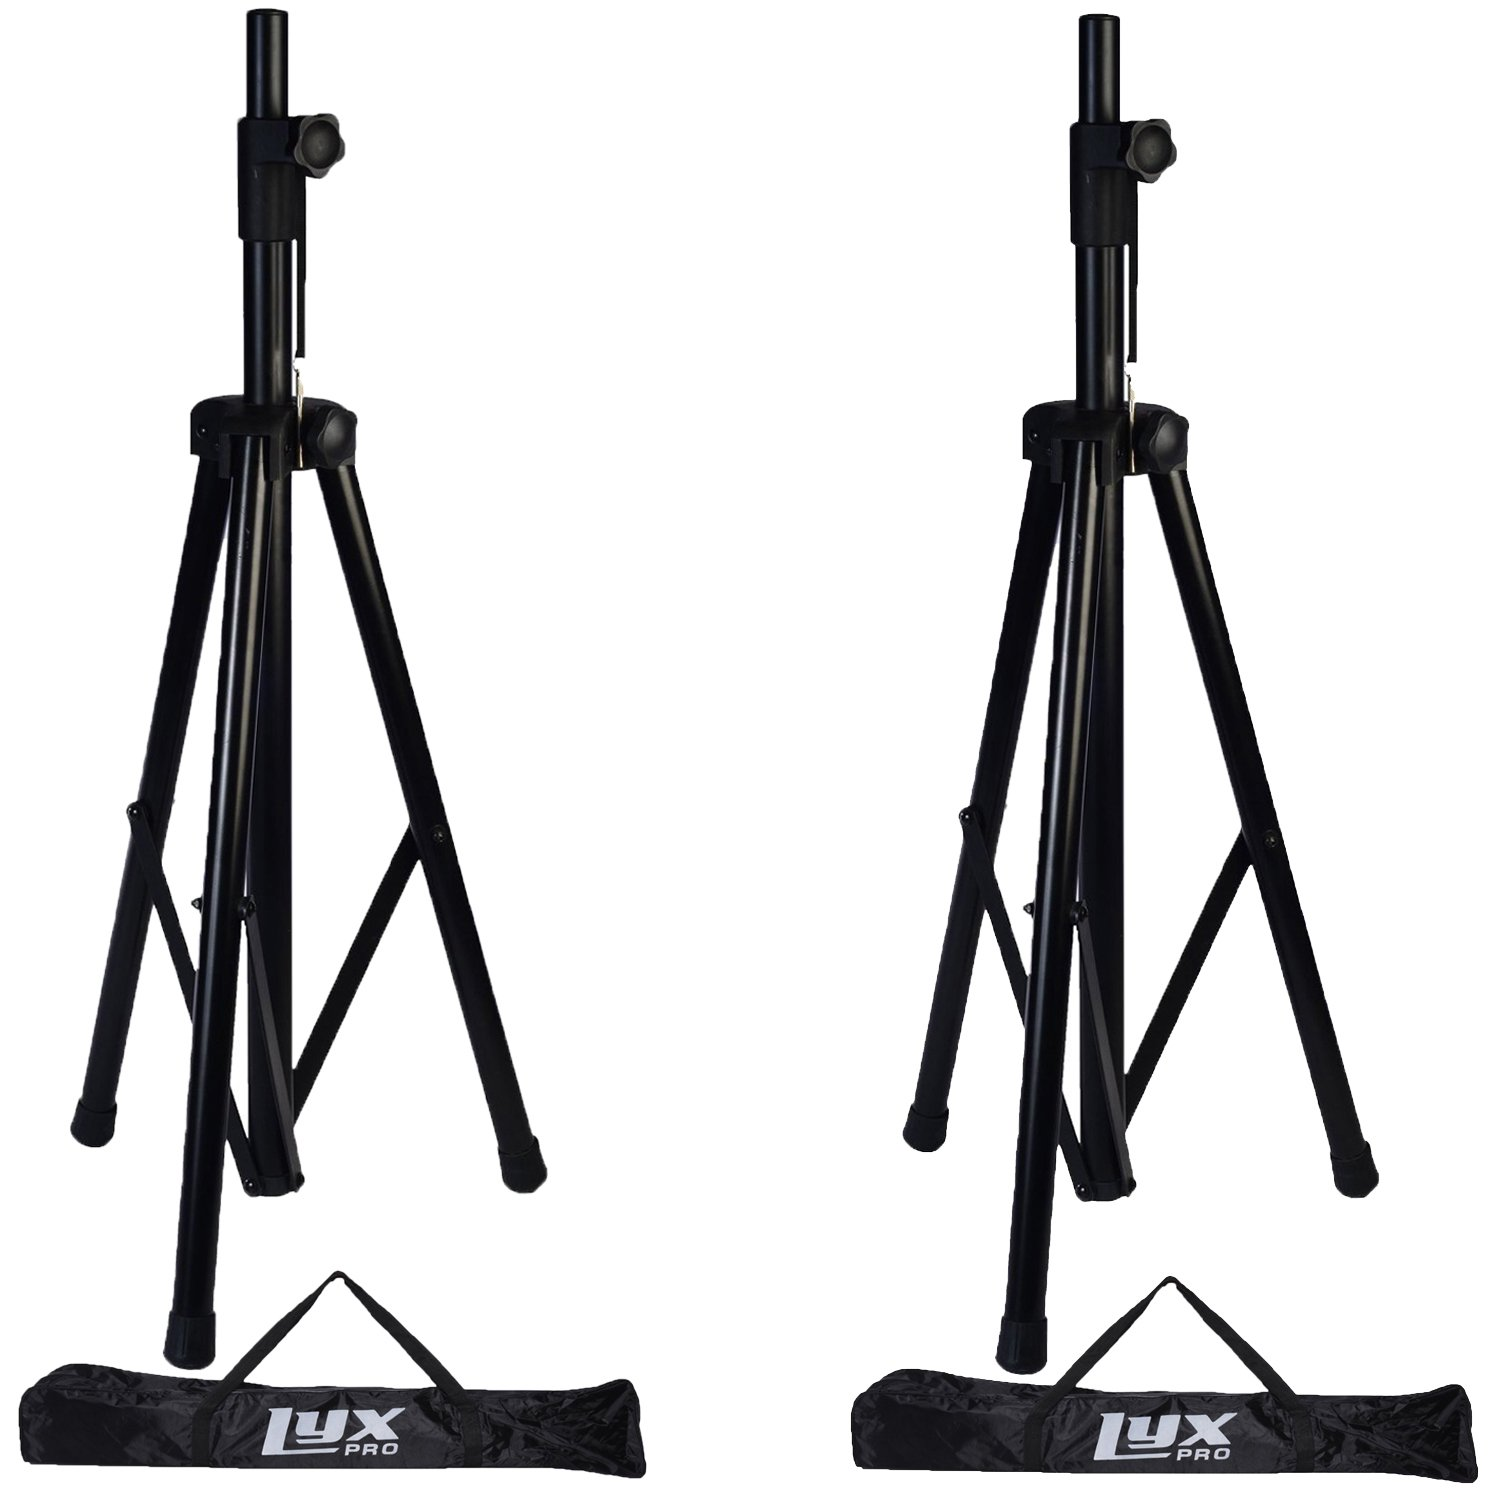 """Pair of LyxPro Speaker Stands with Carrying Bags, 6 Feet Adjustable Height, Folding Tripod Design, Non Slip Feet, Locking Knob & Pin, Fits Speakers Holes 1-3/8"""" & 1-1/2"""" SKS-2"""